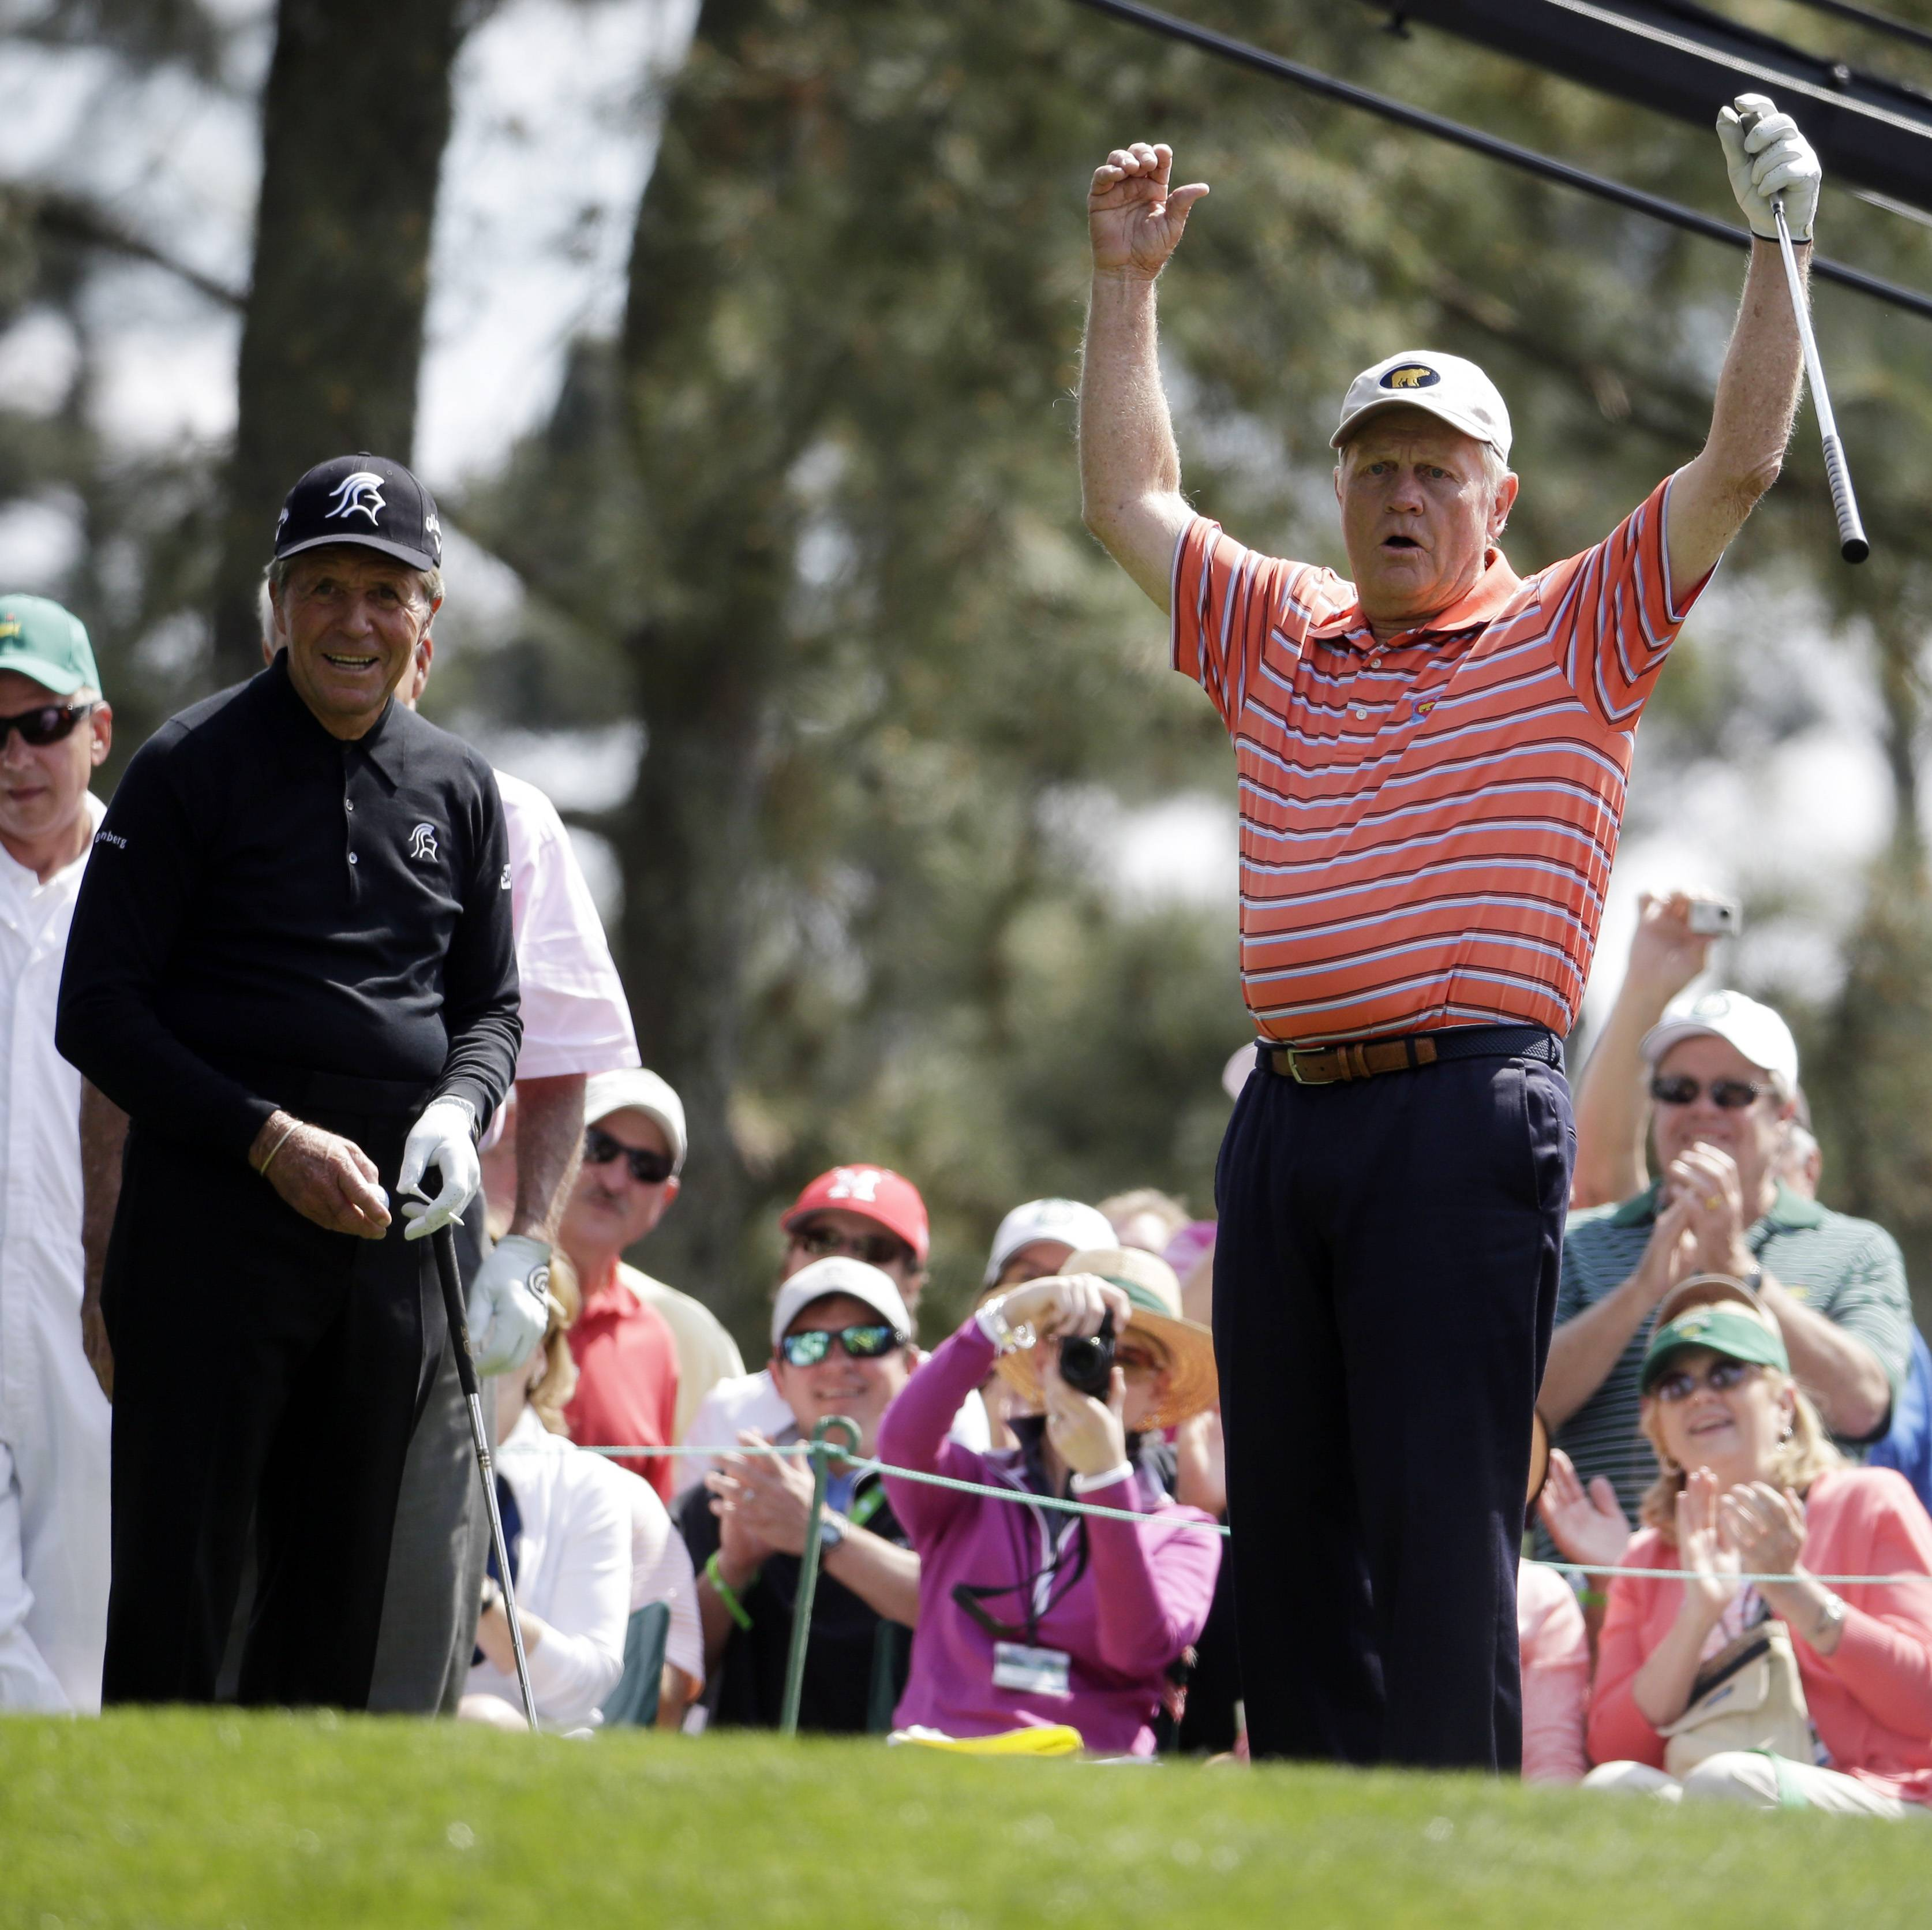 Gary Player, left, watches as Jack Nicklaus reacts to his tee shot on the first hole during the Masters Par-3 competition Wednesday.